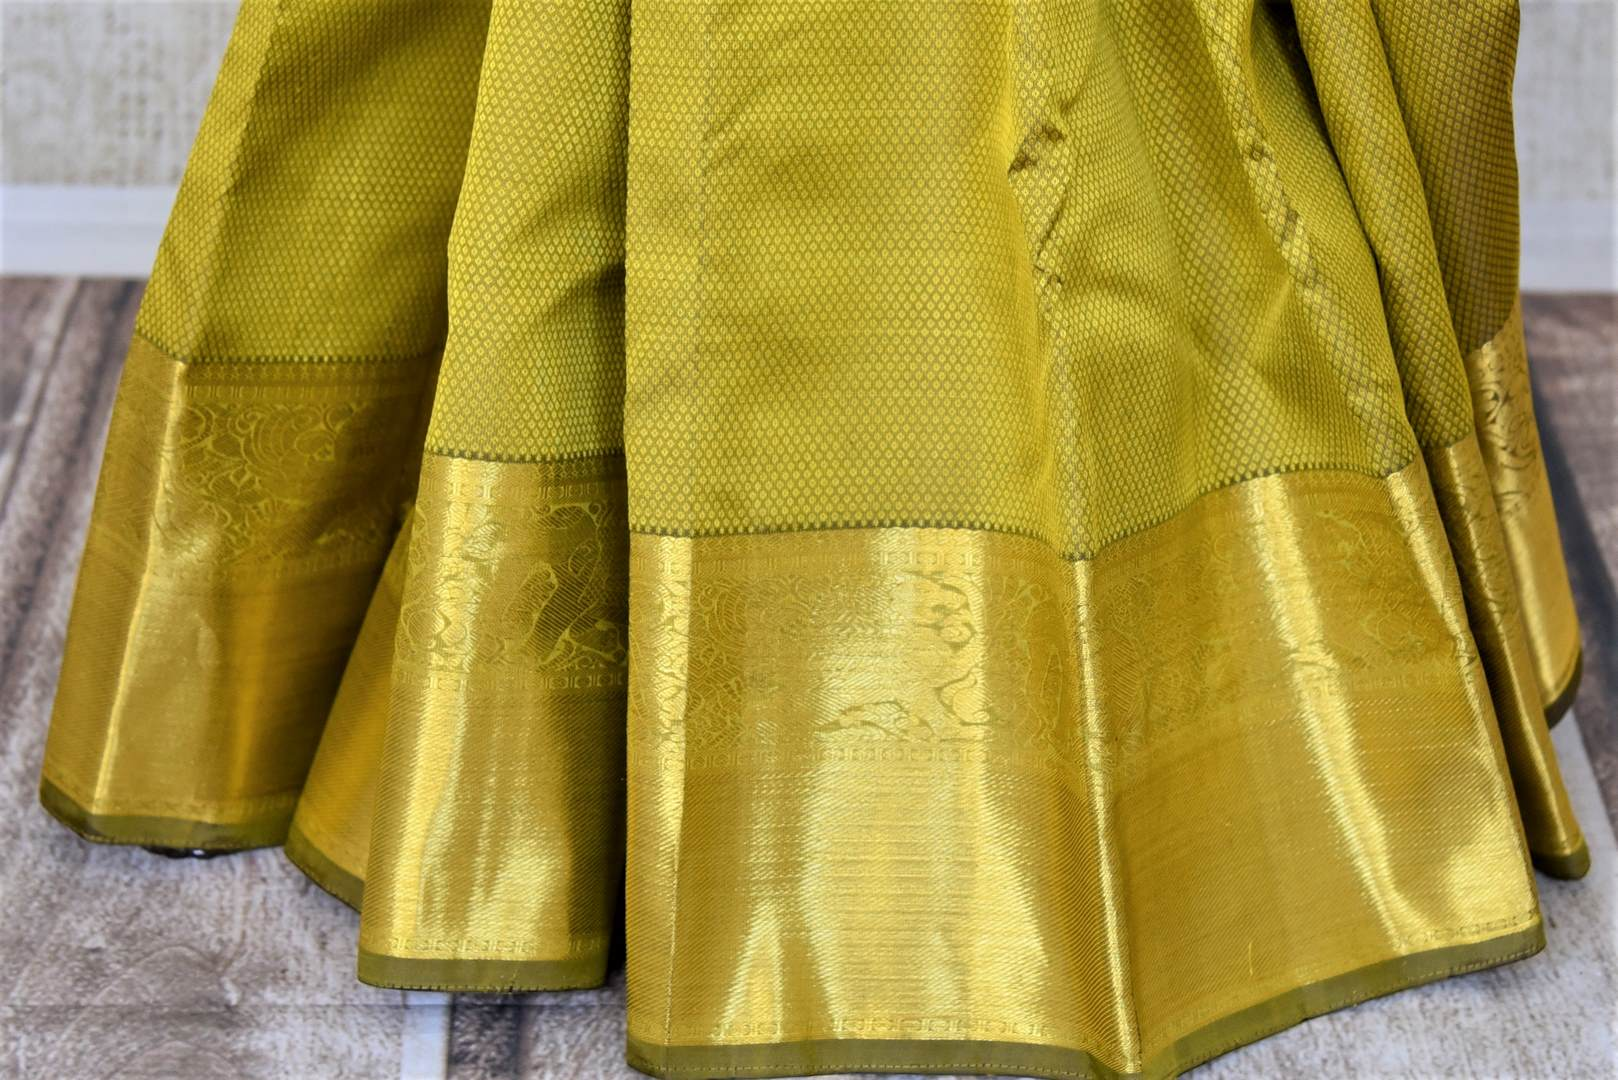 Shop mehendi green Kanjeevaram sari online in USA with golden zari border. Add spark to your festive style with beautiful Kanchipuram silk sarees in USA from Pure Elegance Indian fashion store.-pleats